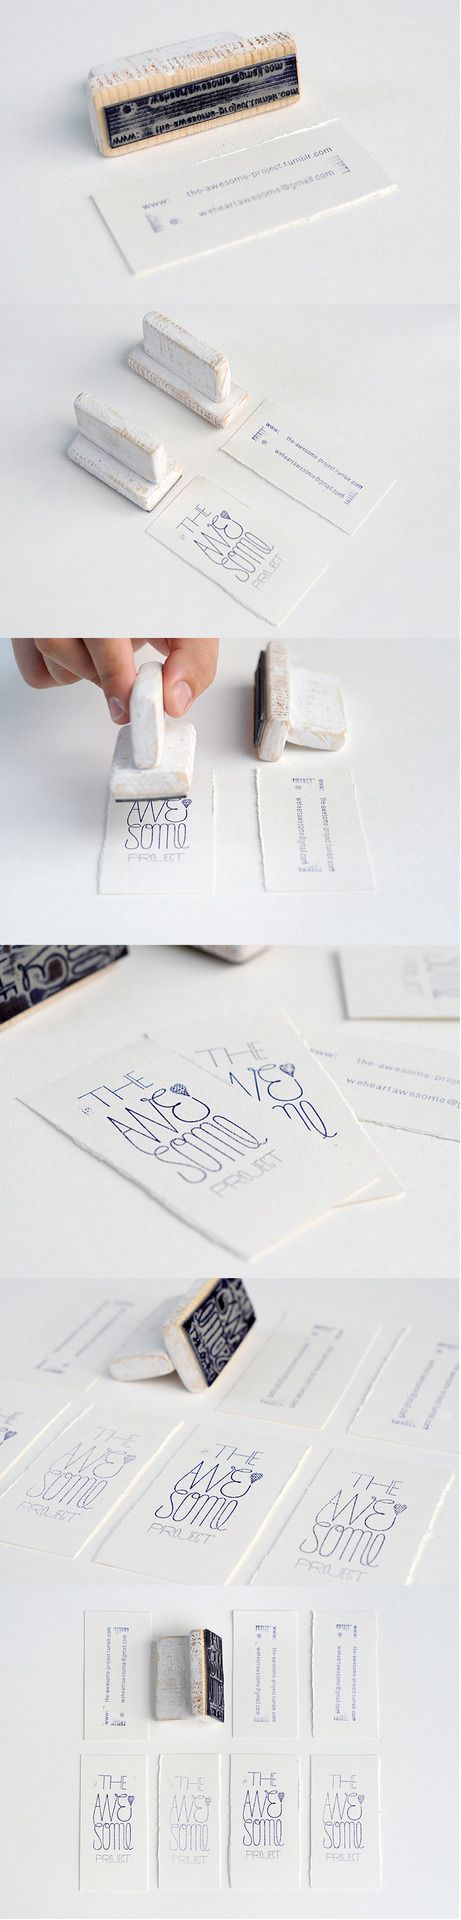 Handmade cards using a stamp. Nice if your business/ profession involves handmade items.